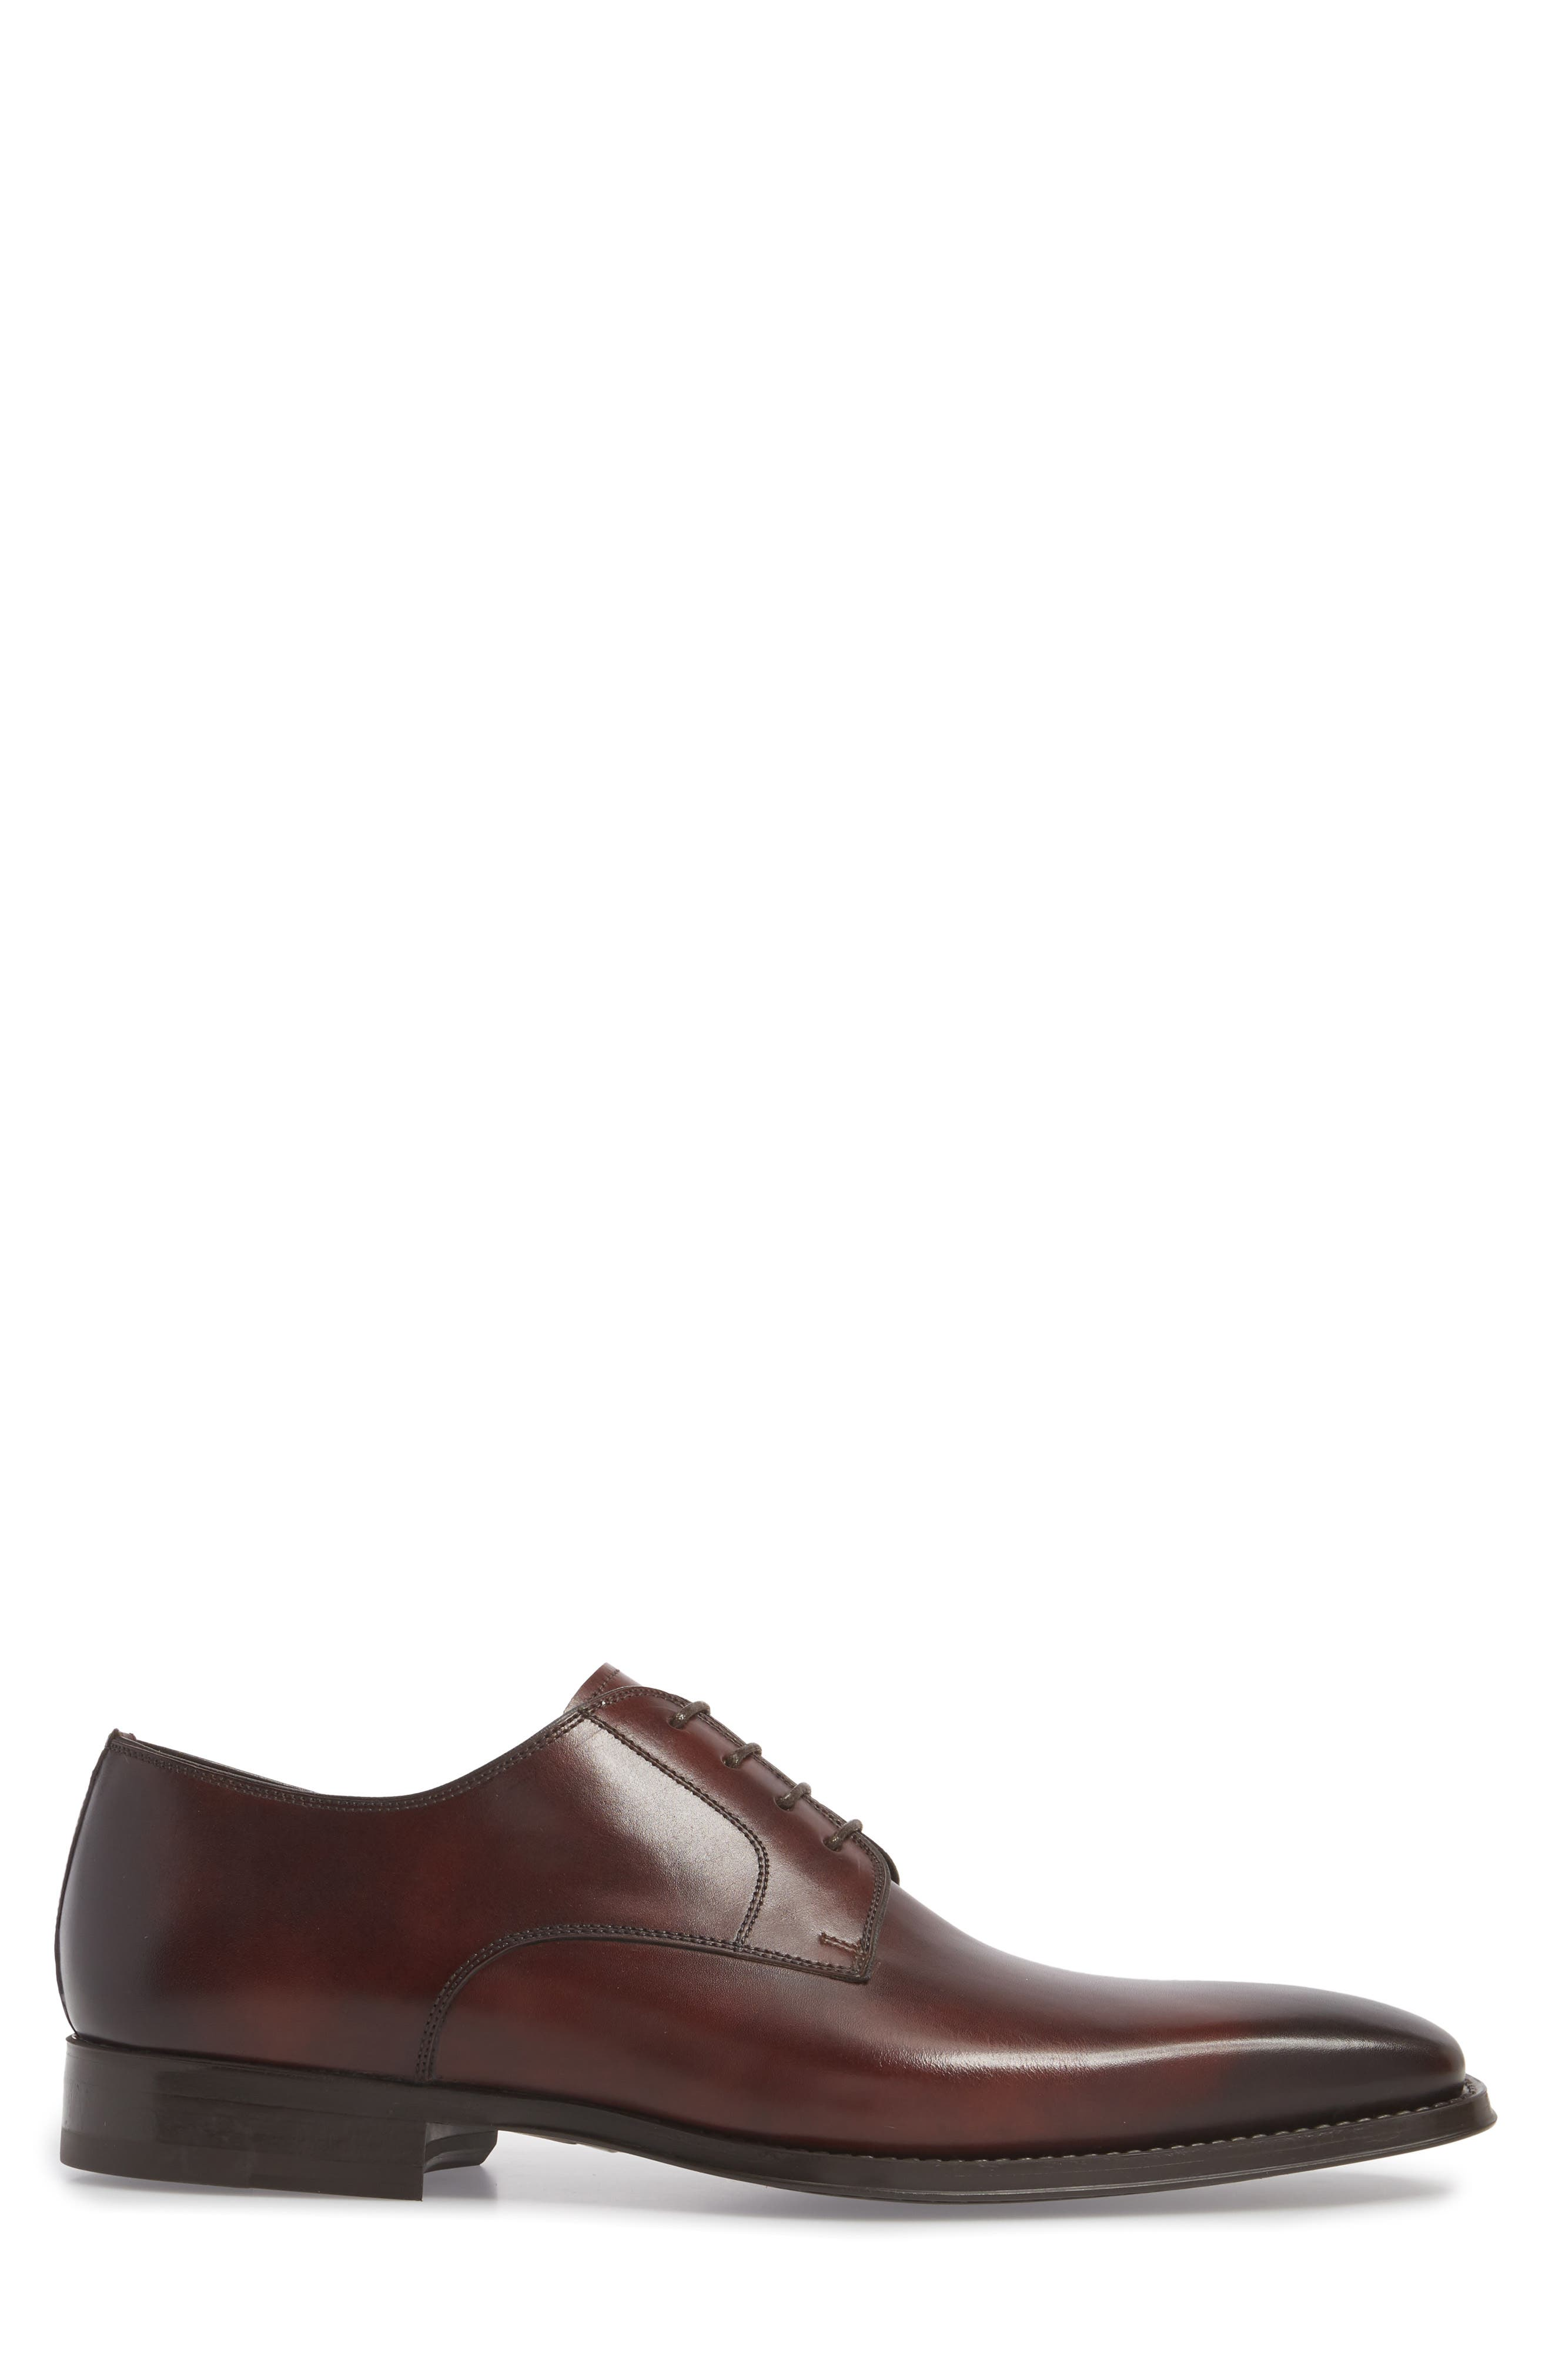 Colo II Plain Toe Derby,                             Alternate thumbnail 3, color,                             Mid Brown Leather